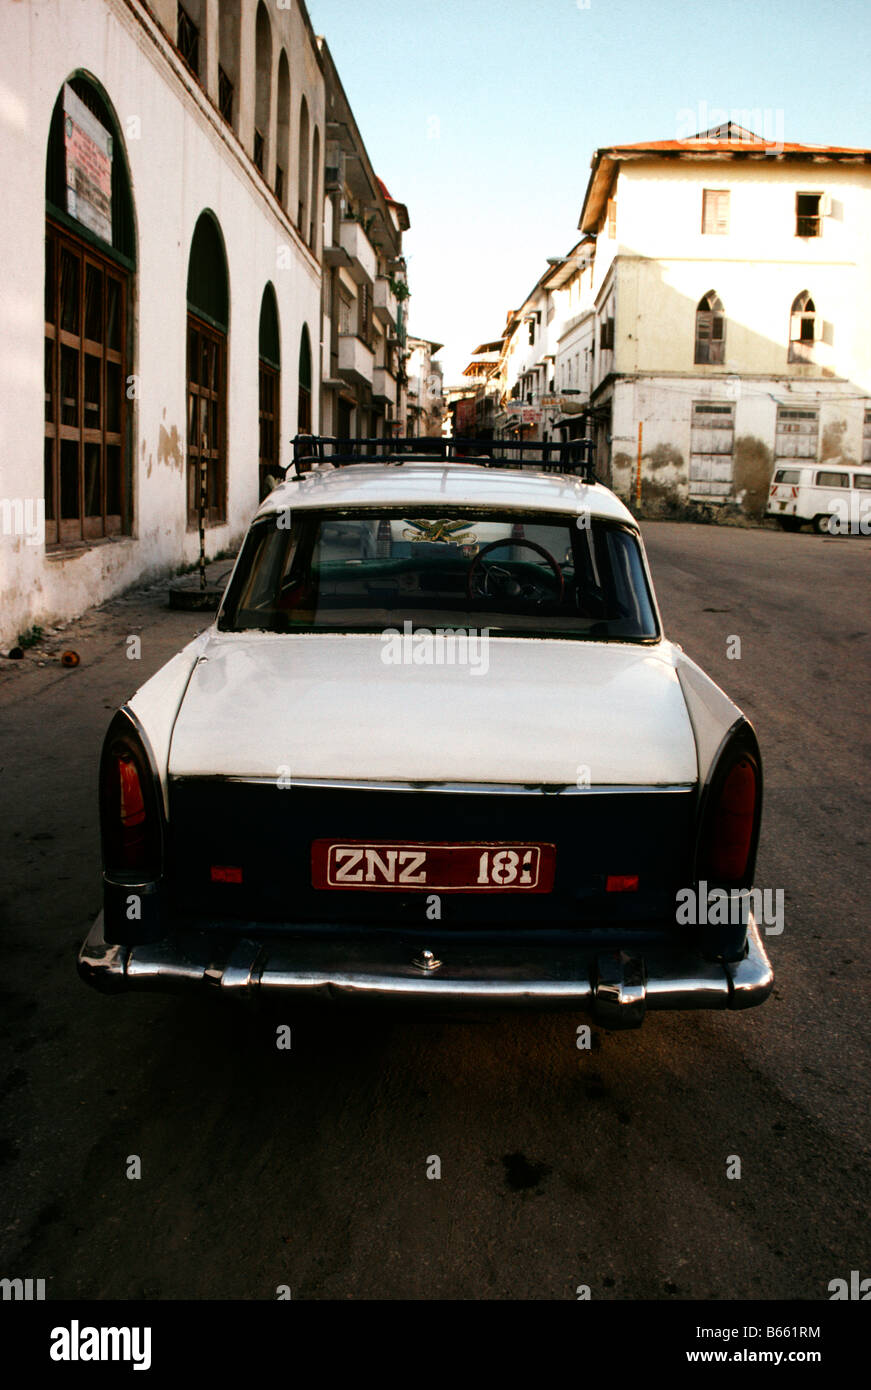 A Zanzibar taxi in the heart of downtown Stone Town on the island of Unguja - Stock Image